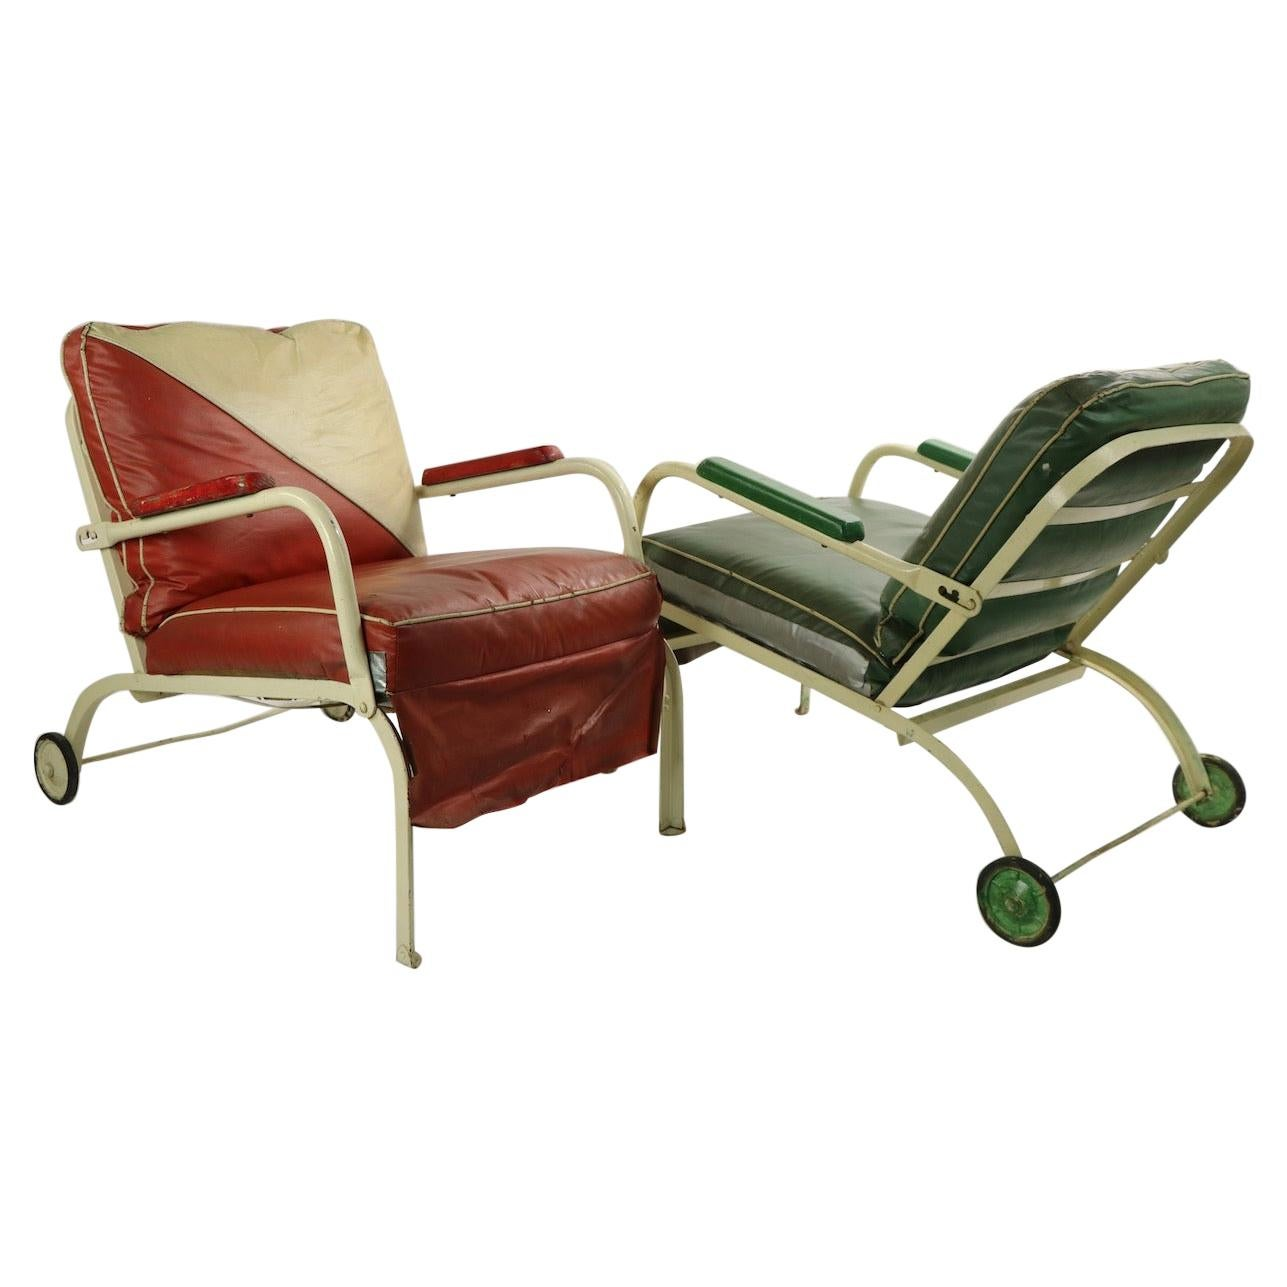 Pair of Art Deco Outdoor Porch Garden Reclining Lounge Chairs